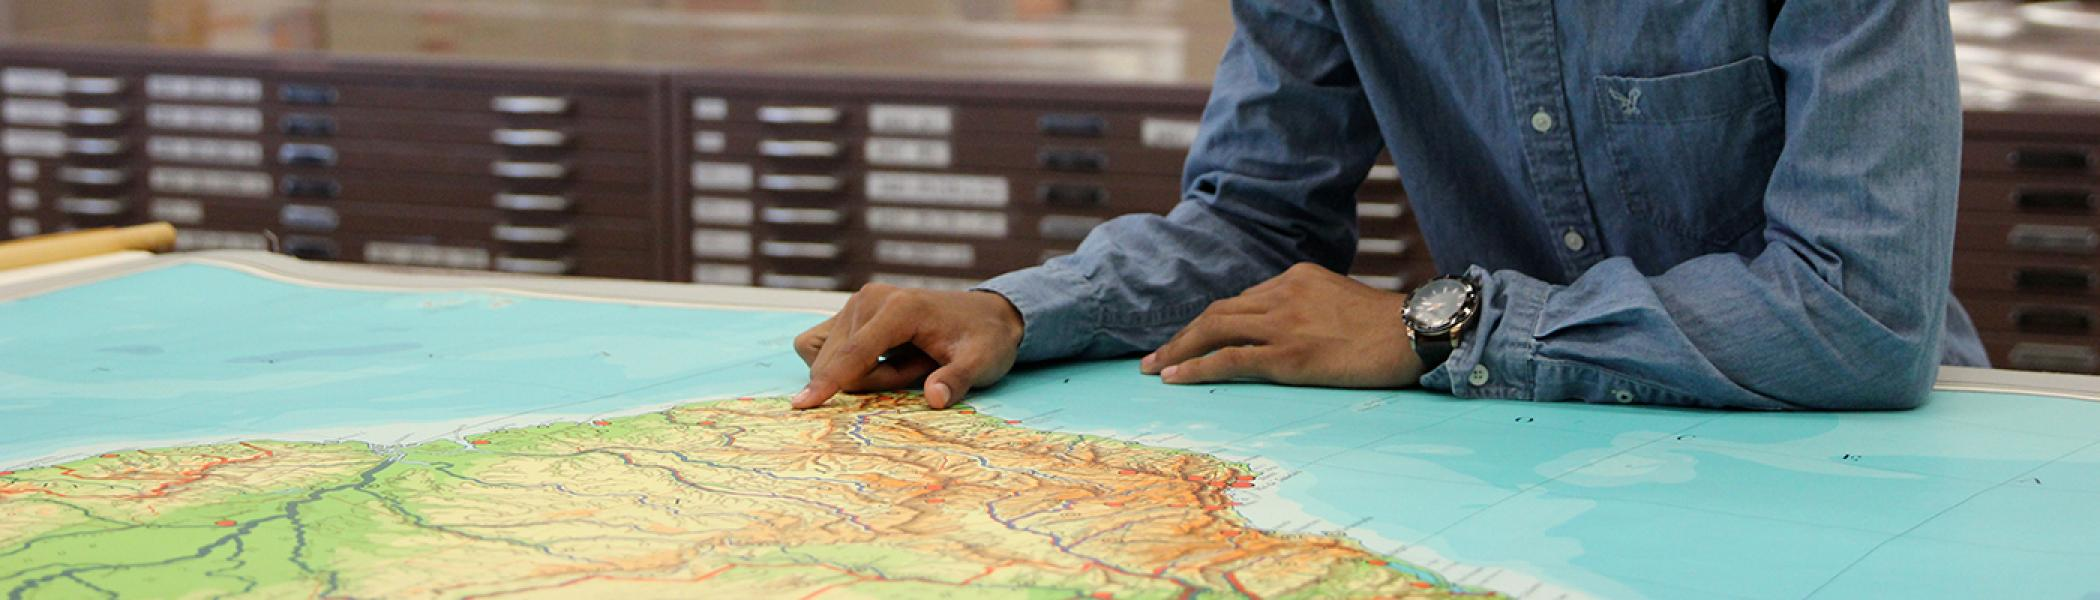 Hands on a map